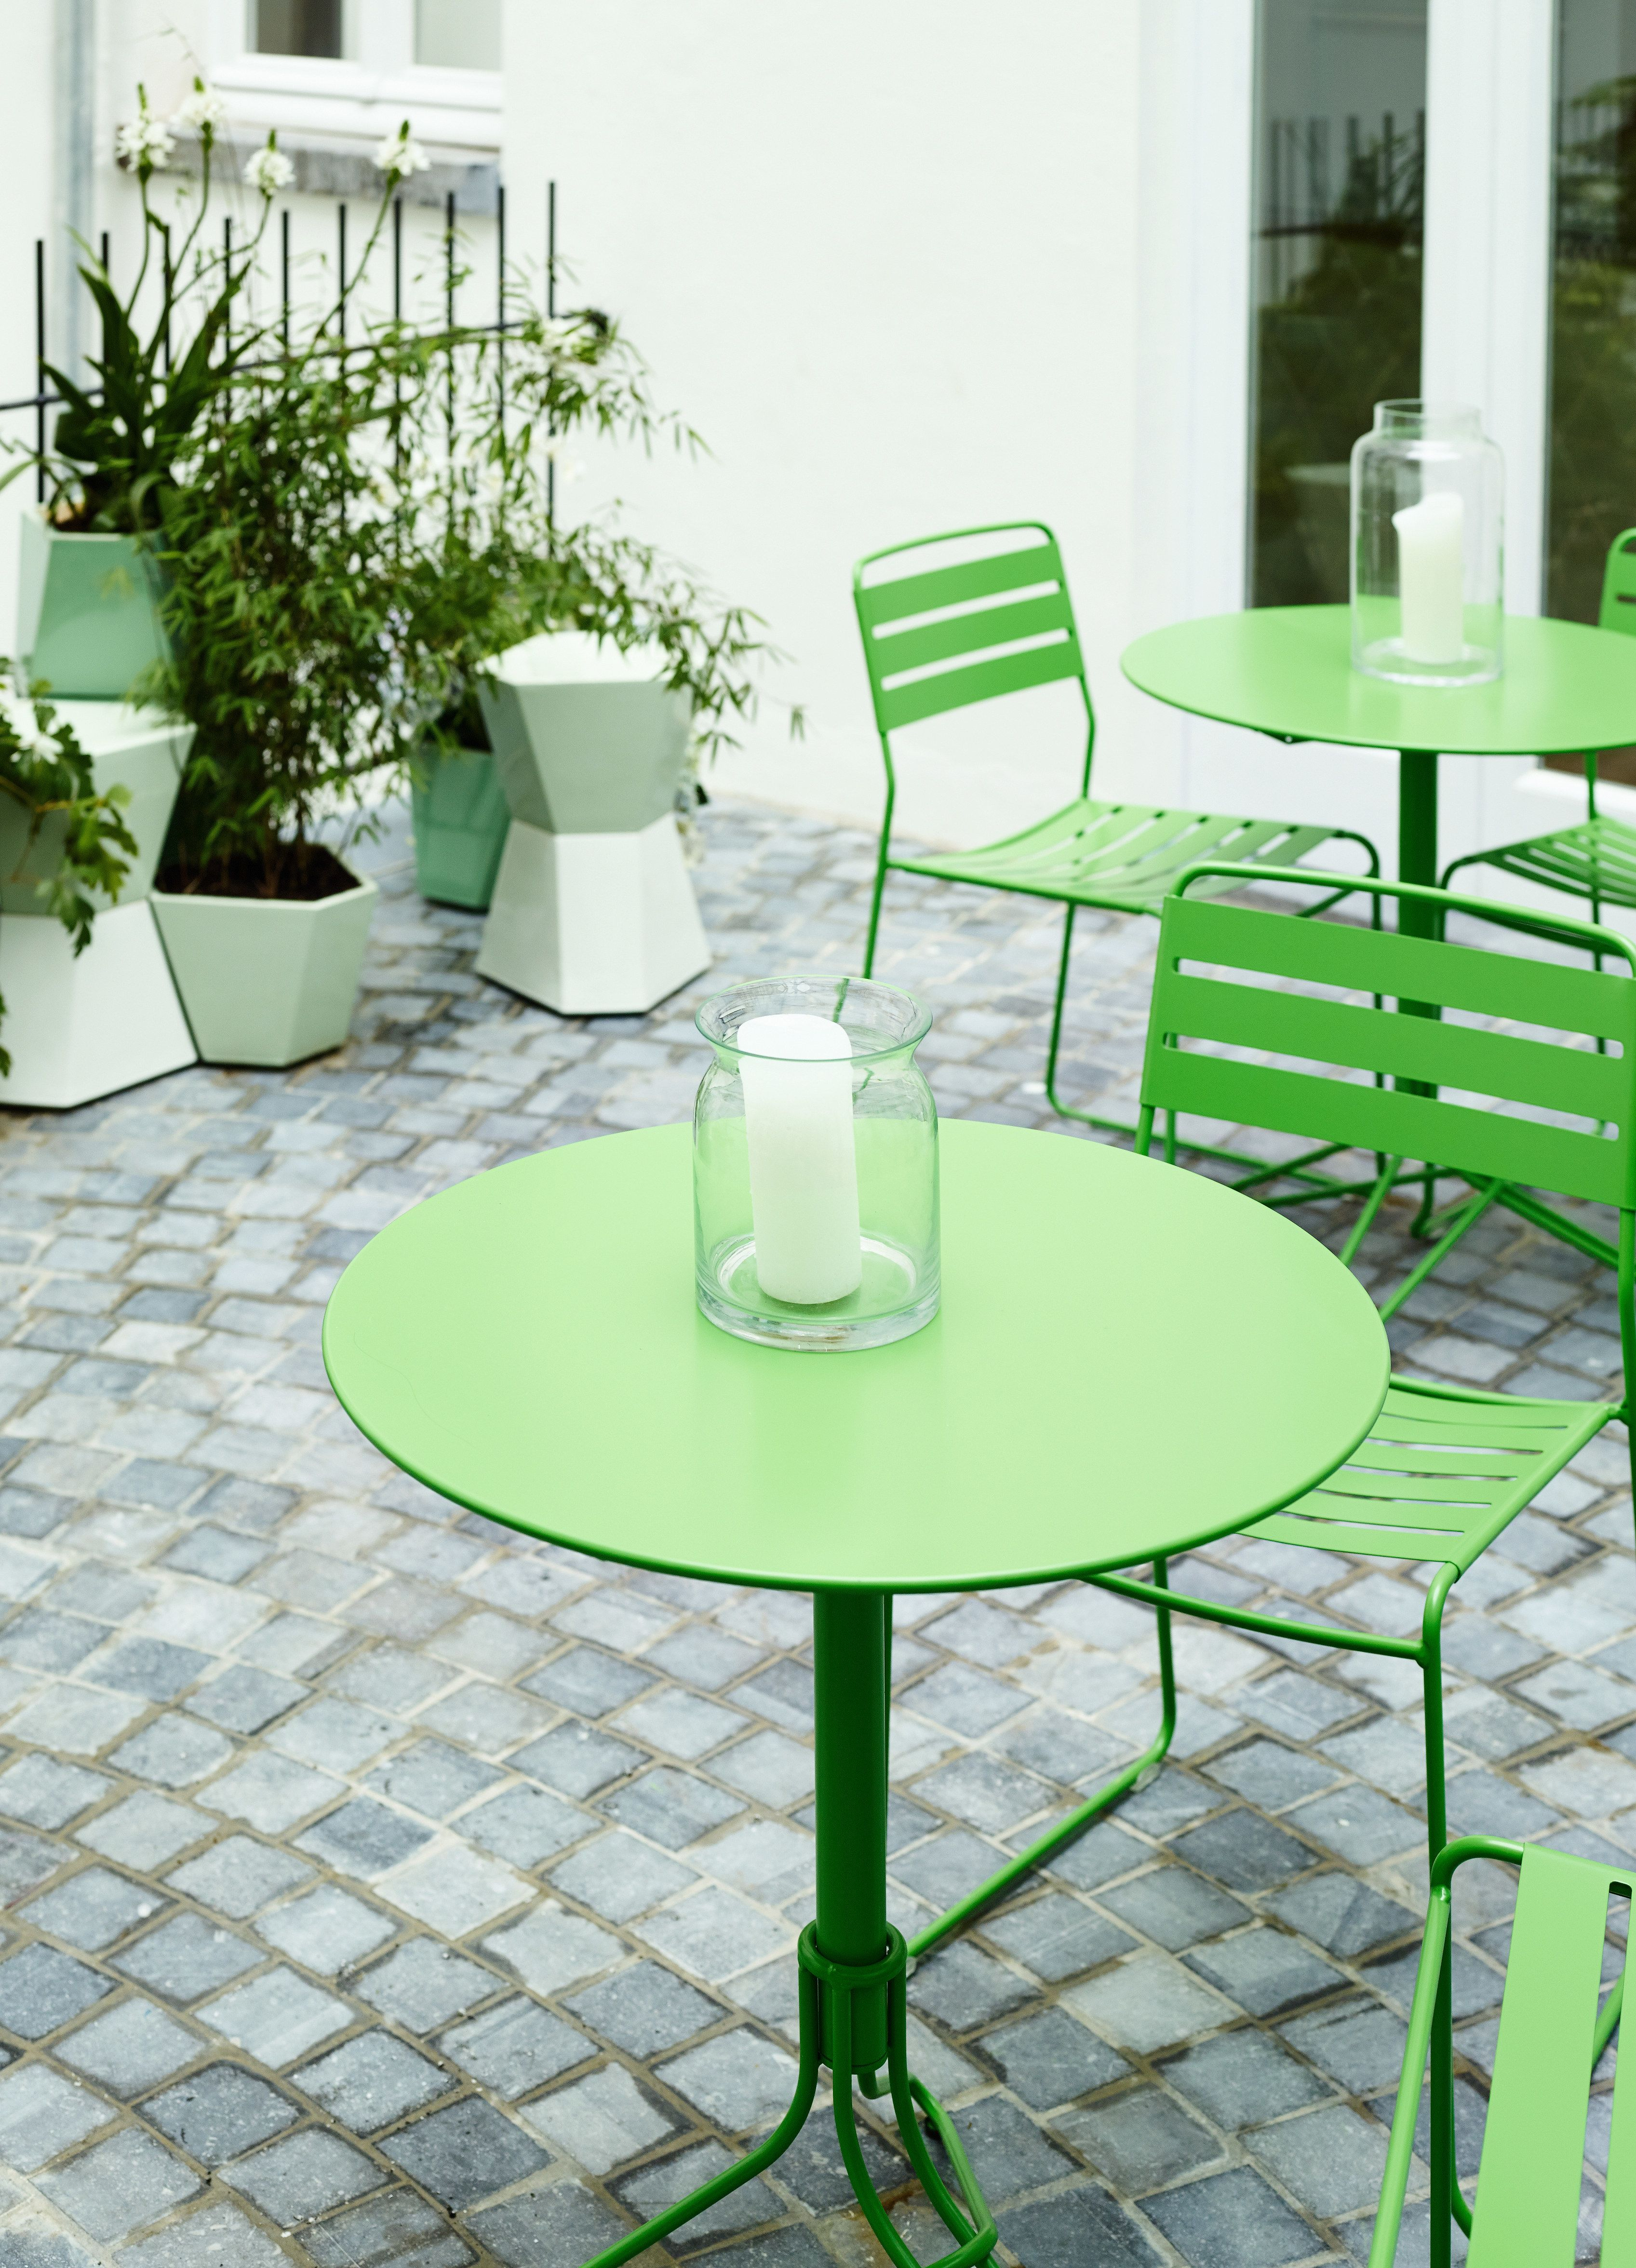 Tables Chaises Hotel Surprising Mobilier Exterieur Fermob Mobilier Exterieur Mobilier De Salon Mobilier